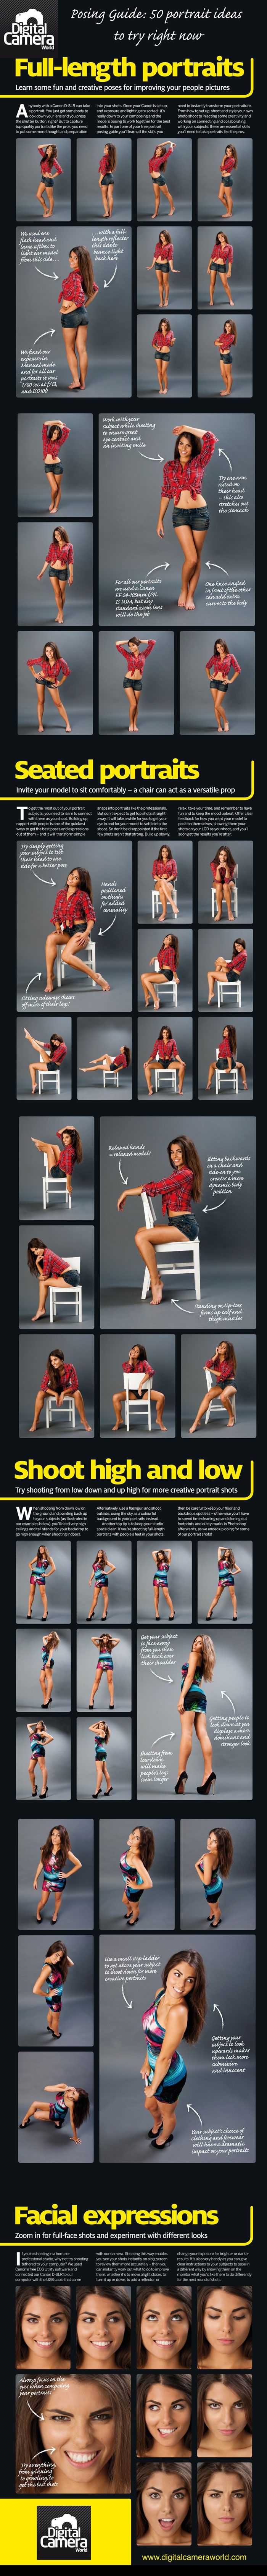 poses: Senior Picture, Idea, Senior Girl, Senior Photo, Posing Guide, Cheat Sheet